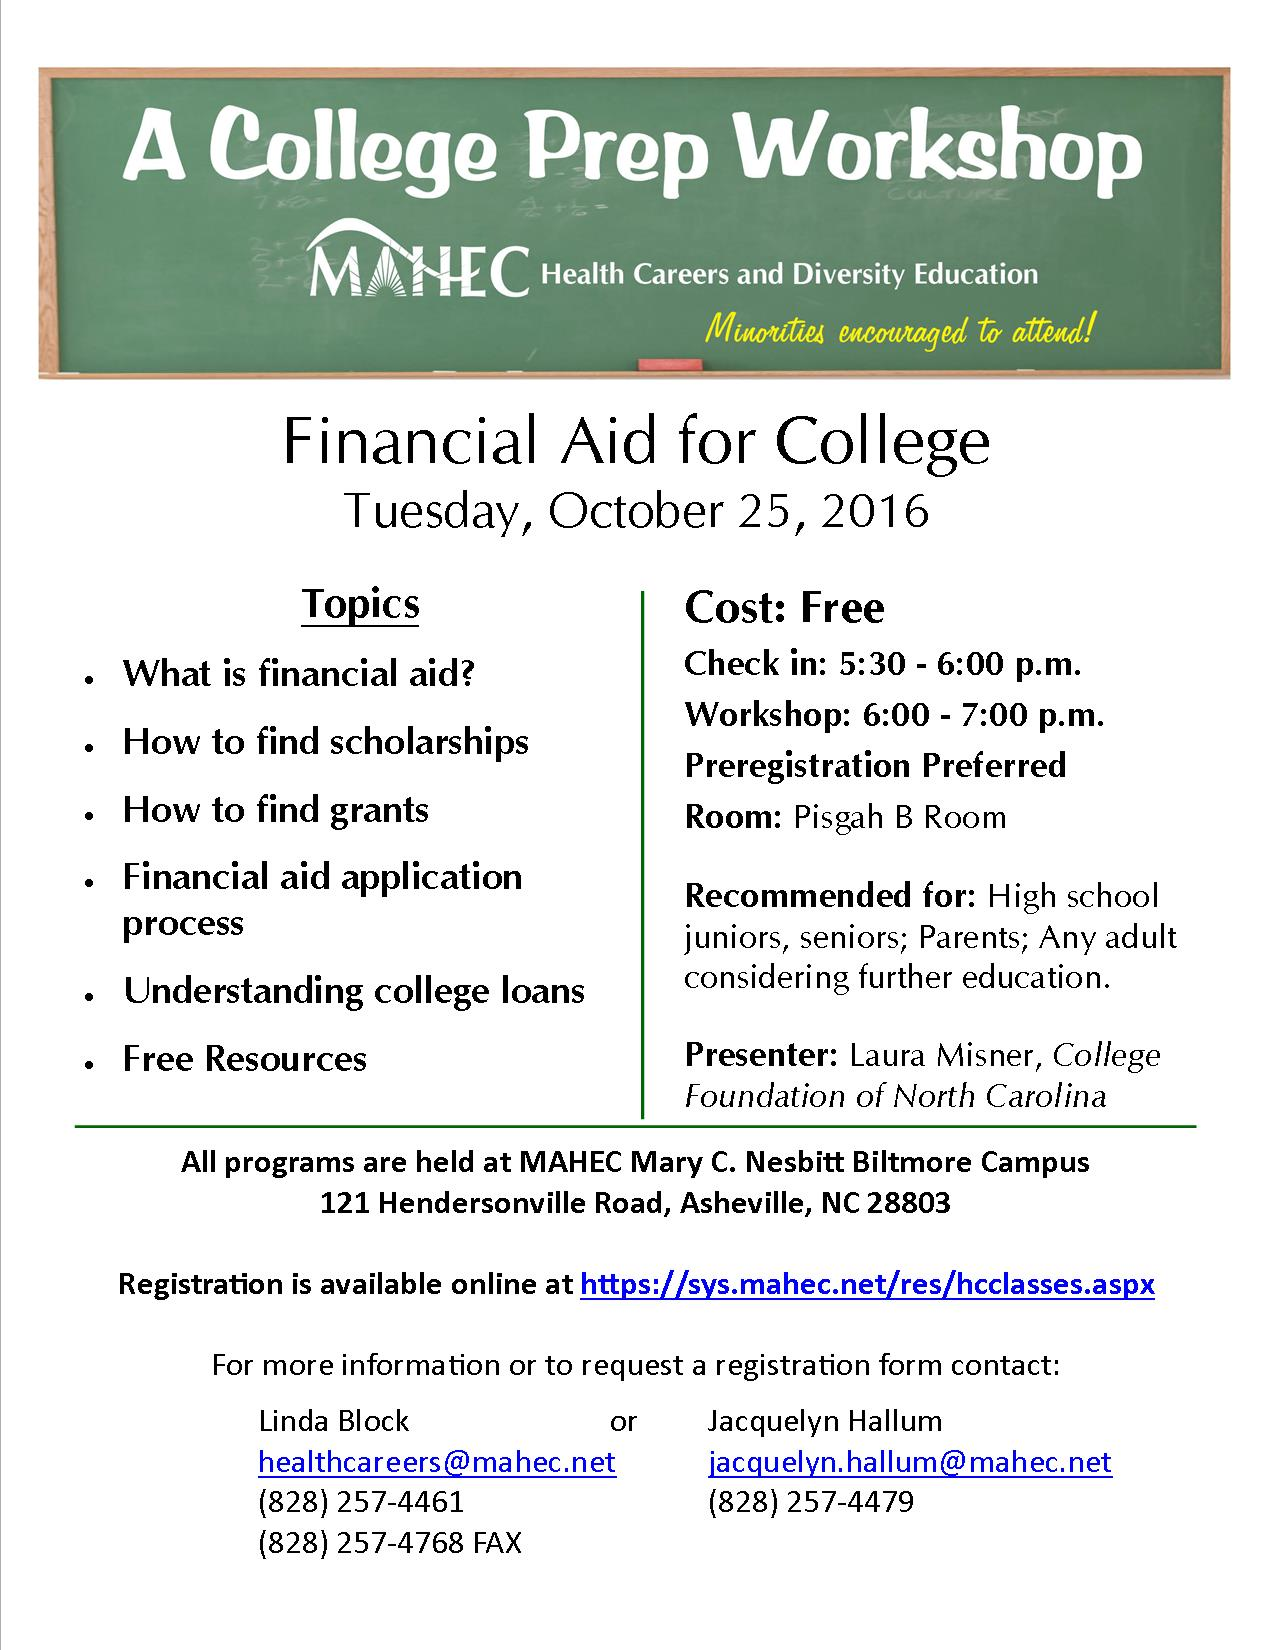 Free Financial Aid Class Offered